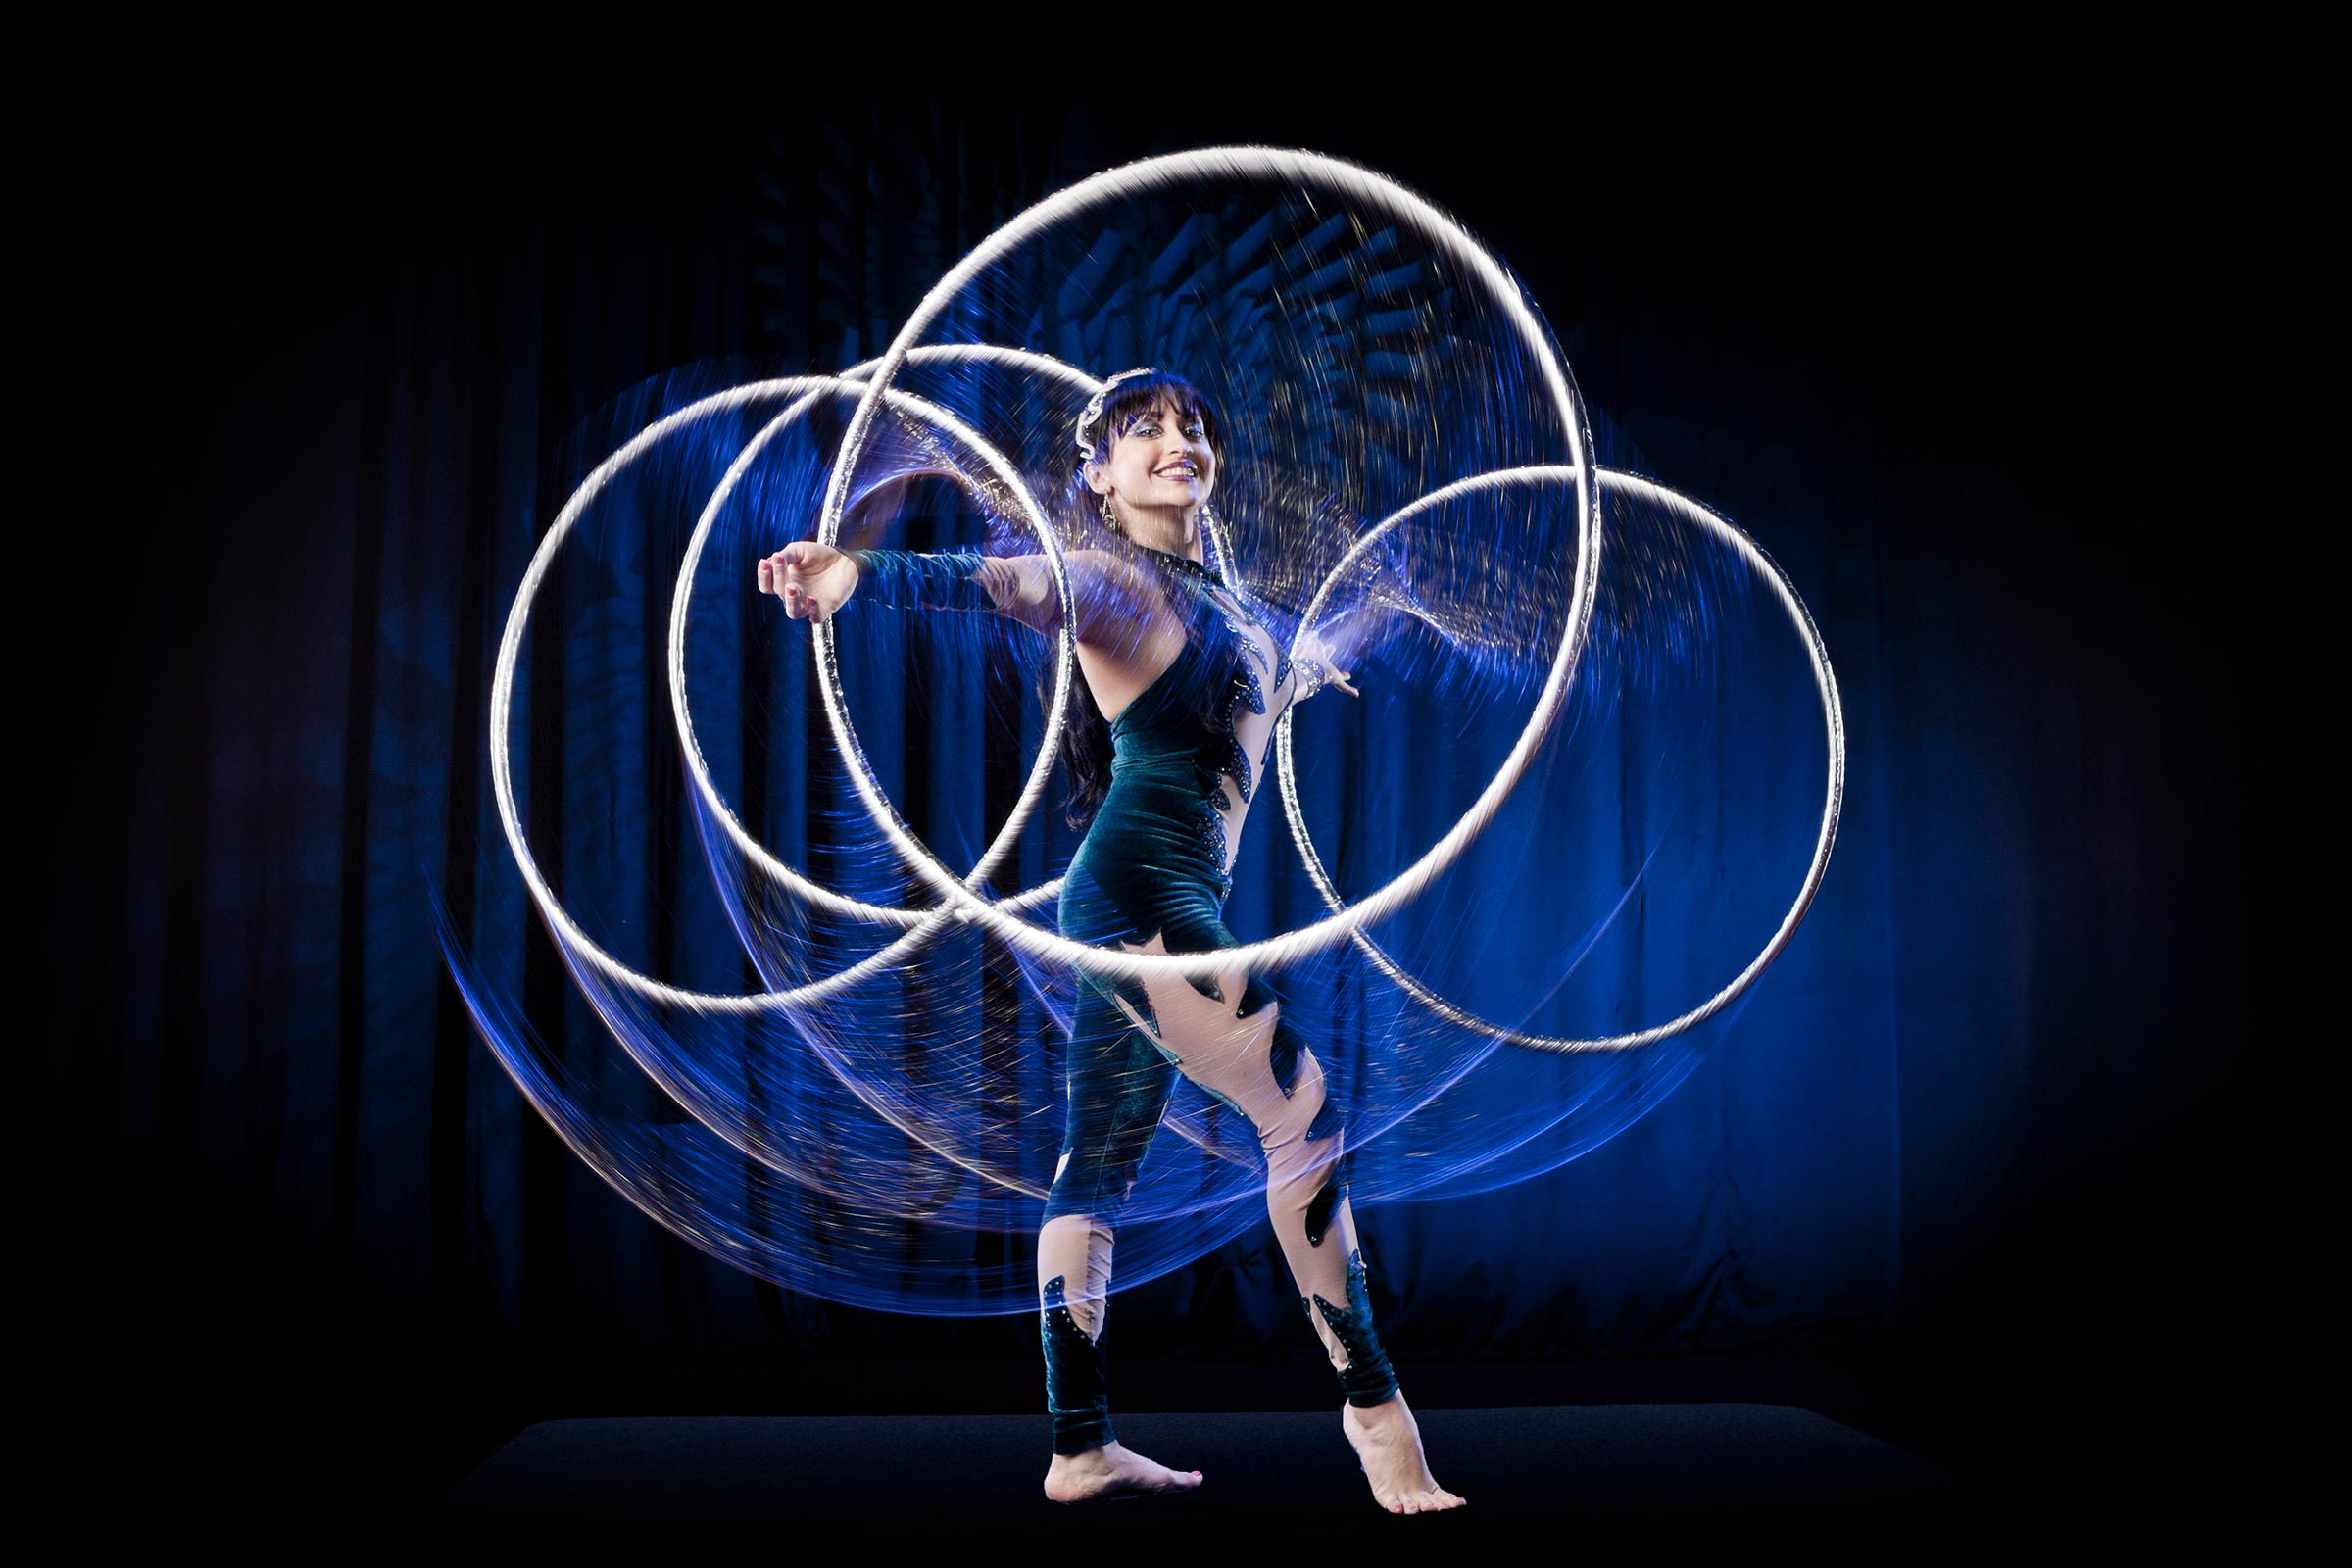 performer twirling hula hoops on stage